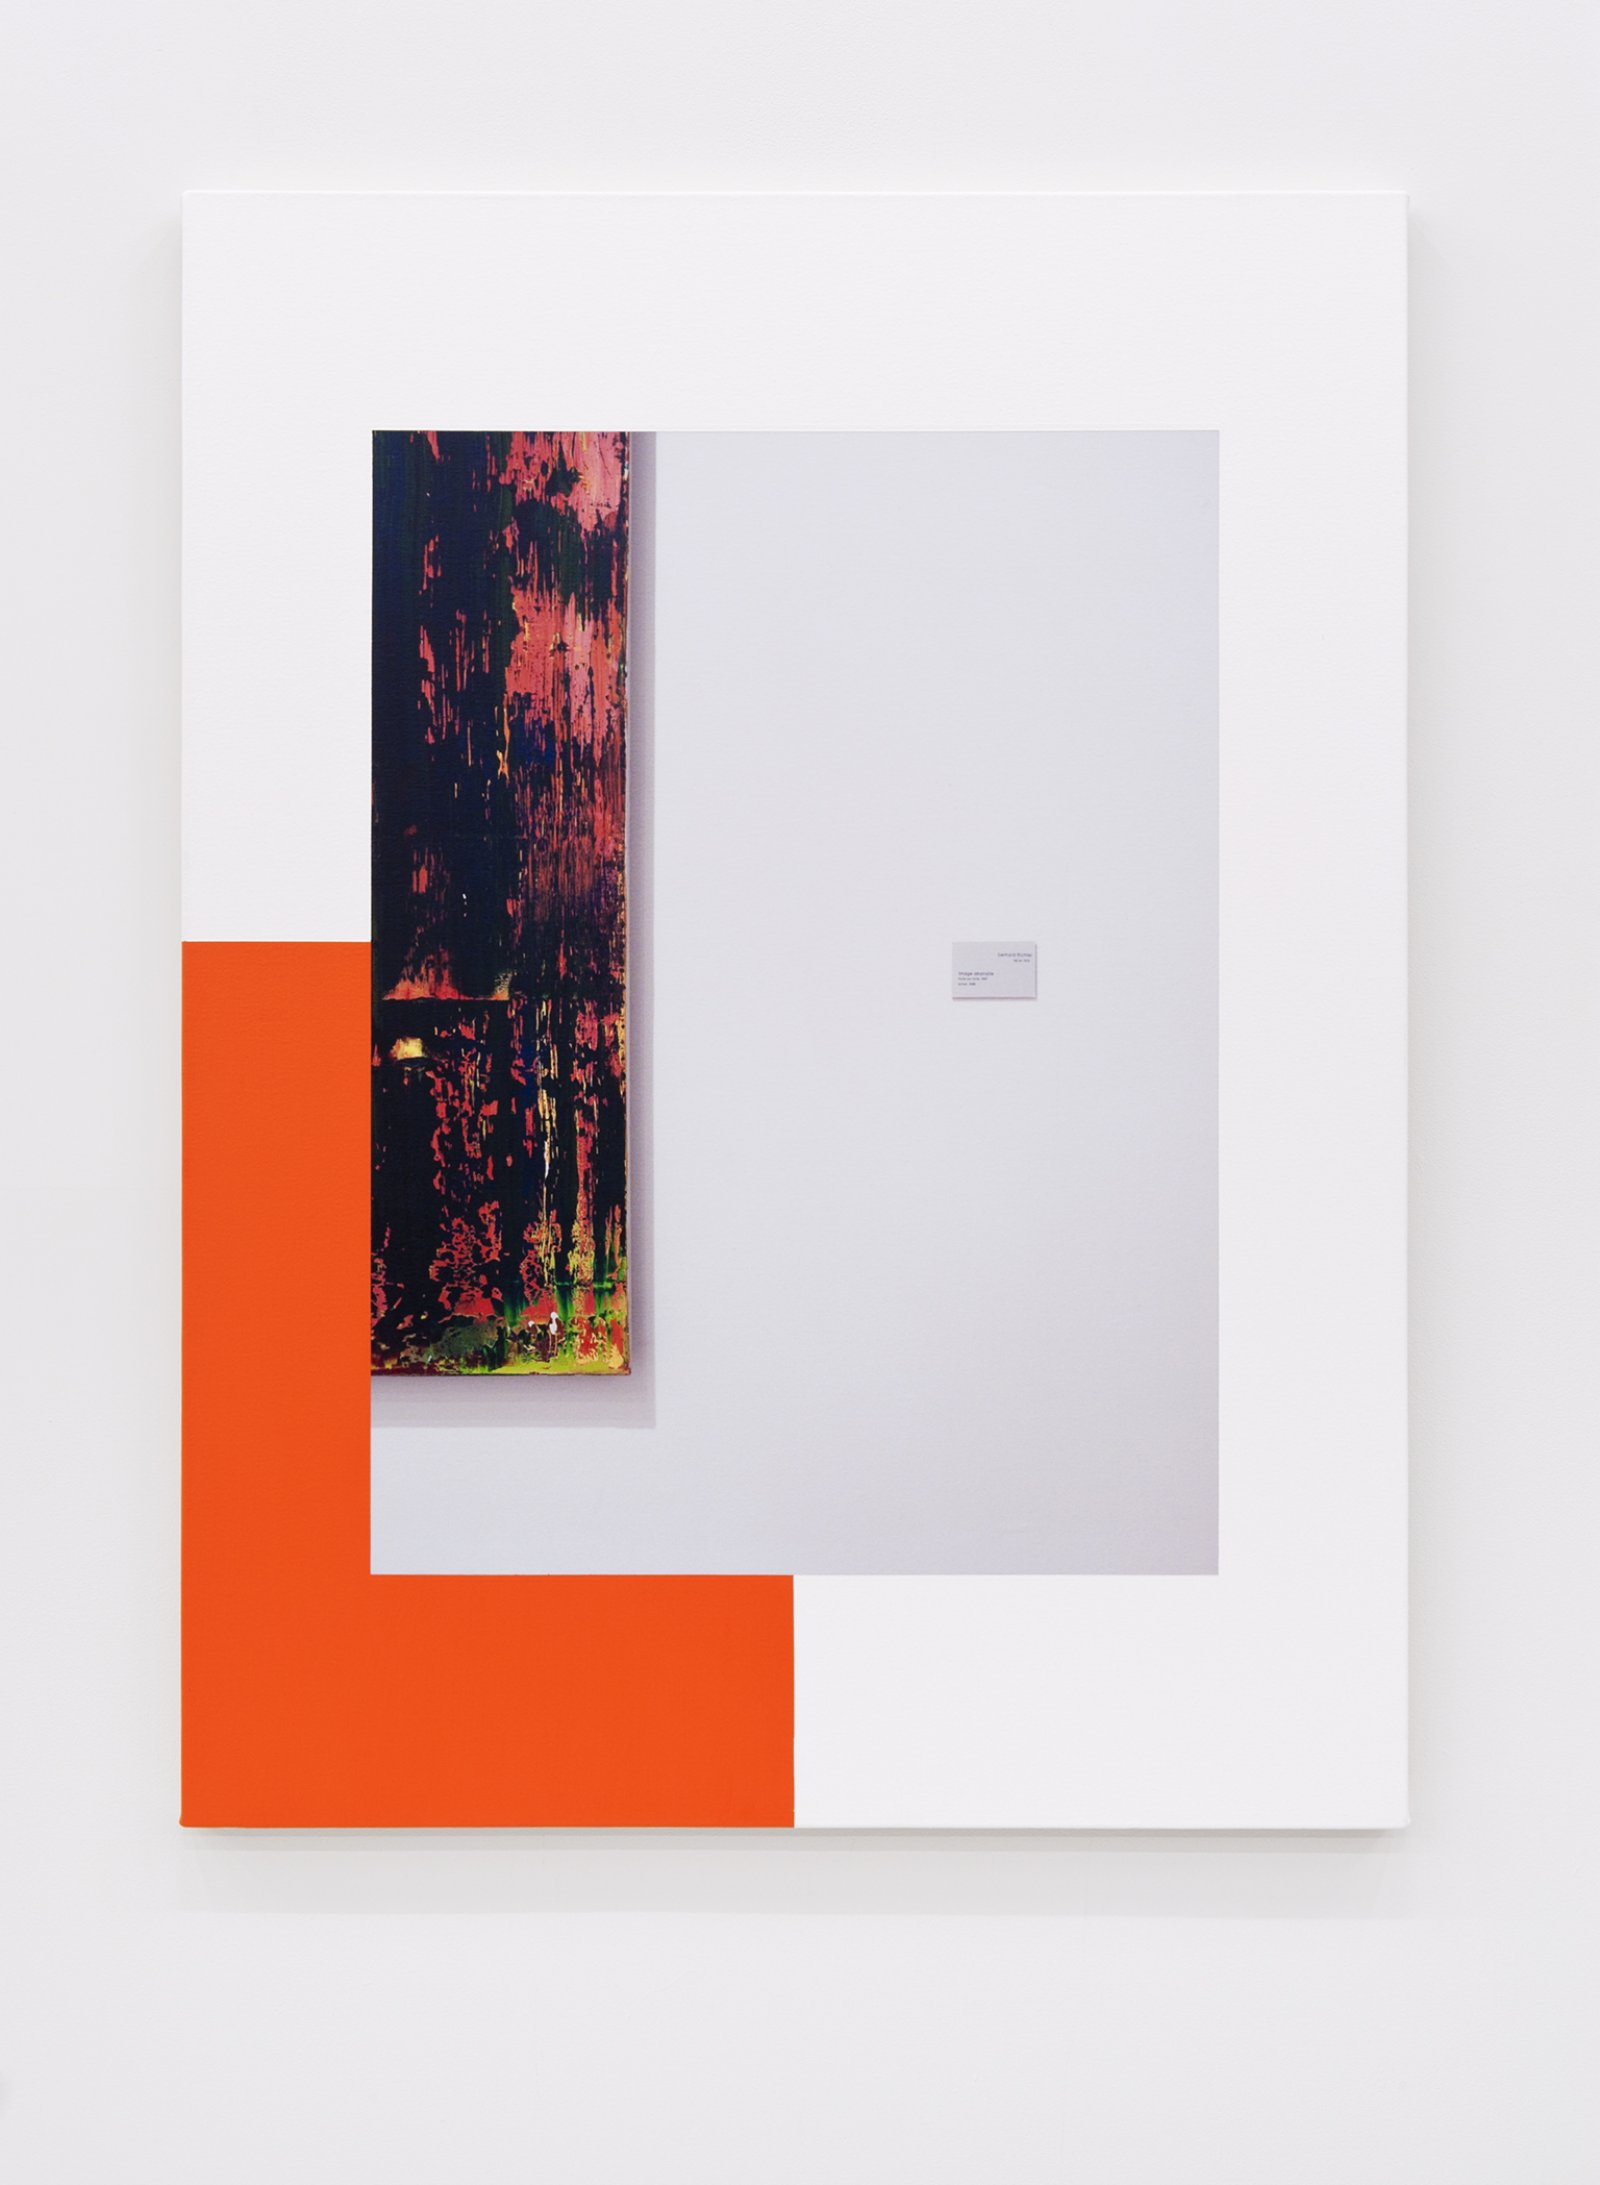 Ian Wallace,Abstract Composition (with Richter),2012, photolaminate with acrylic on canvas, 48 x 36 in. (122 x 91 cm)